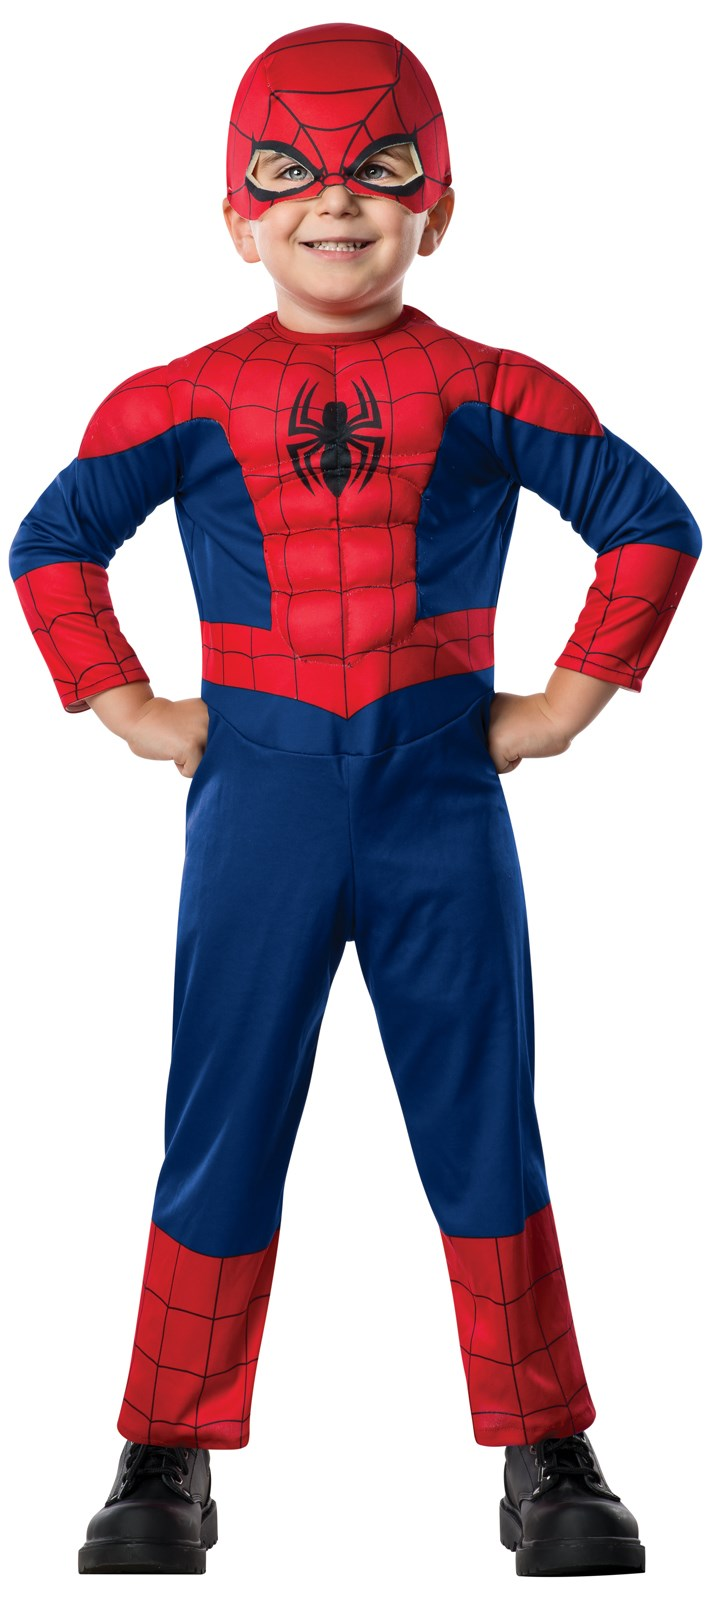 Ultimate Spider-Man Toddler Boy Costume Toddler (2-4)